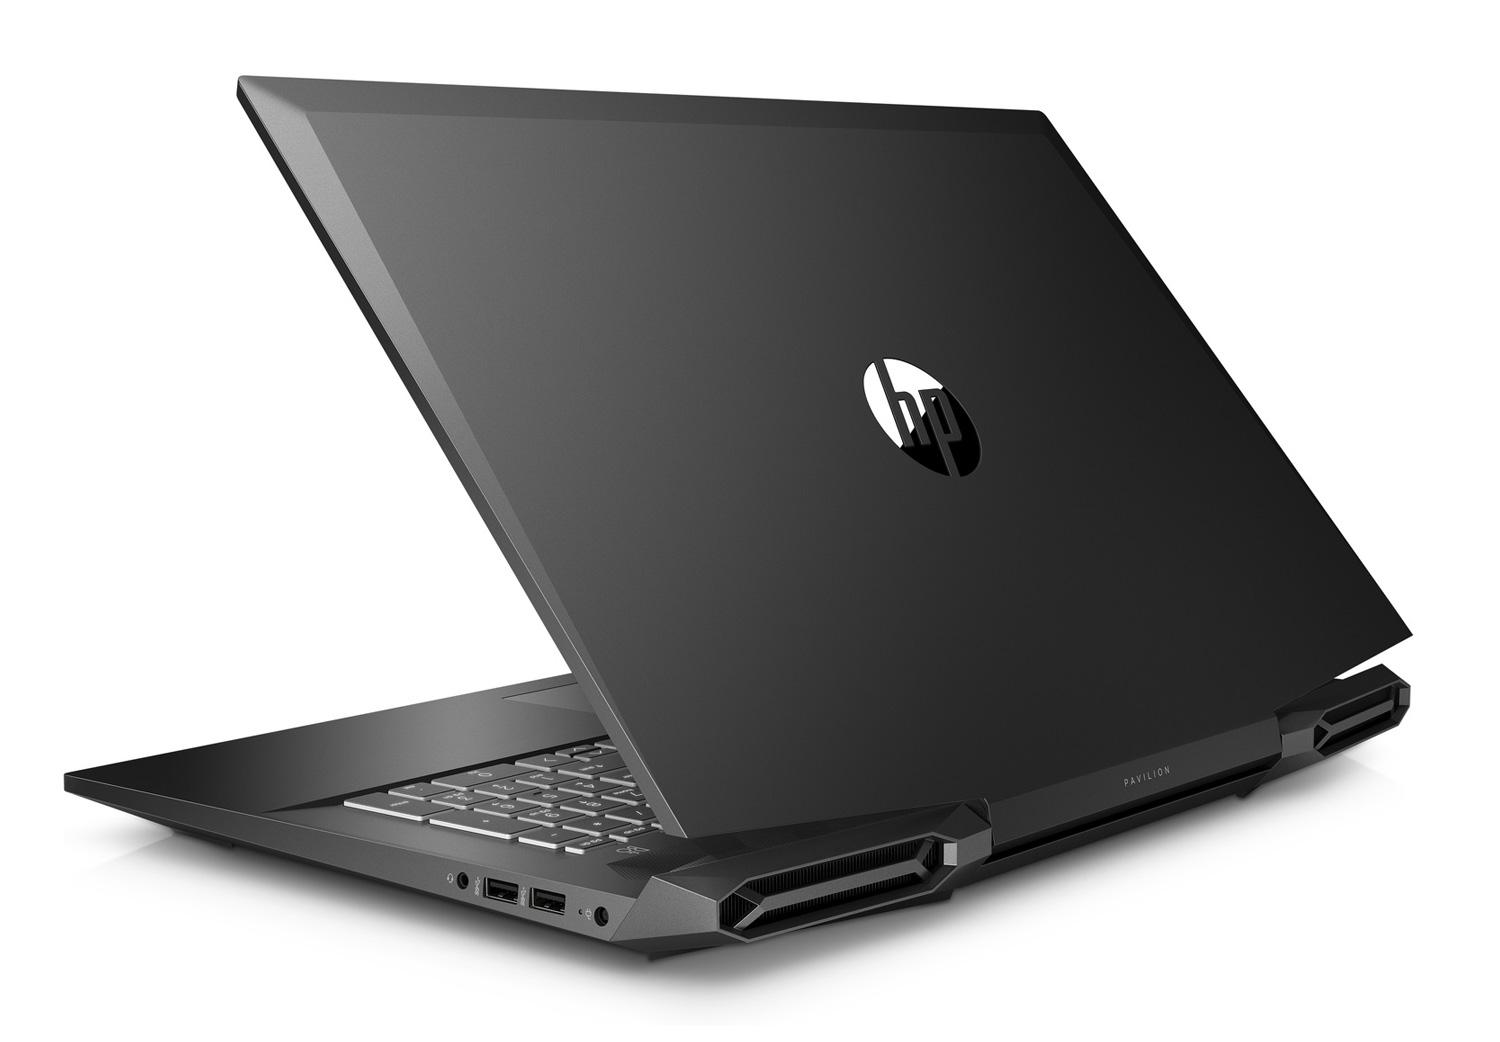 Image du PC portable HP Pavilion Gaming 17-cd0068nf - GTX 1660 Ti, IPS, Coffee Refresh